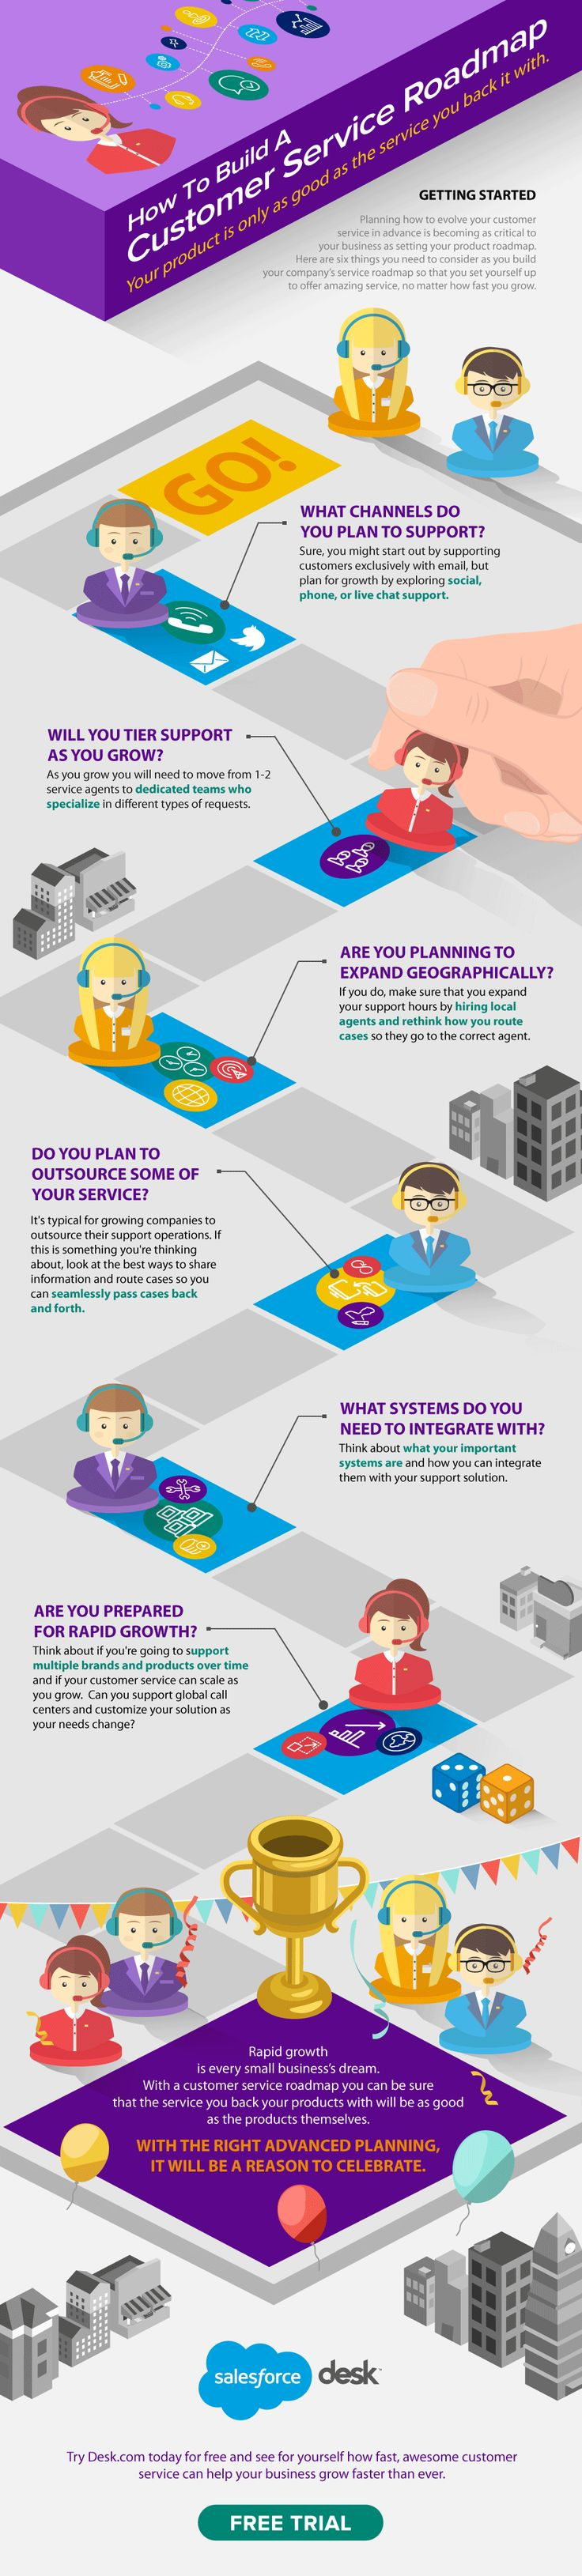 How to Build a Customer Service Roadmap